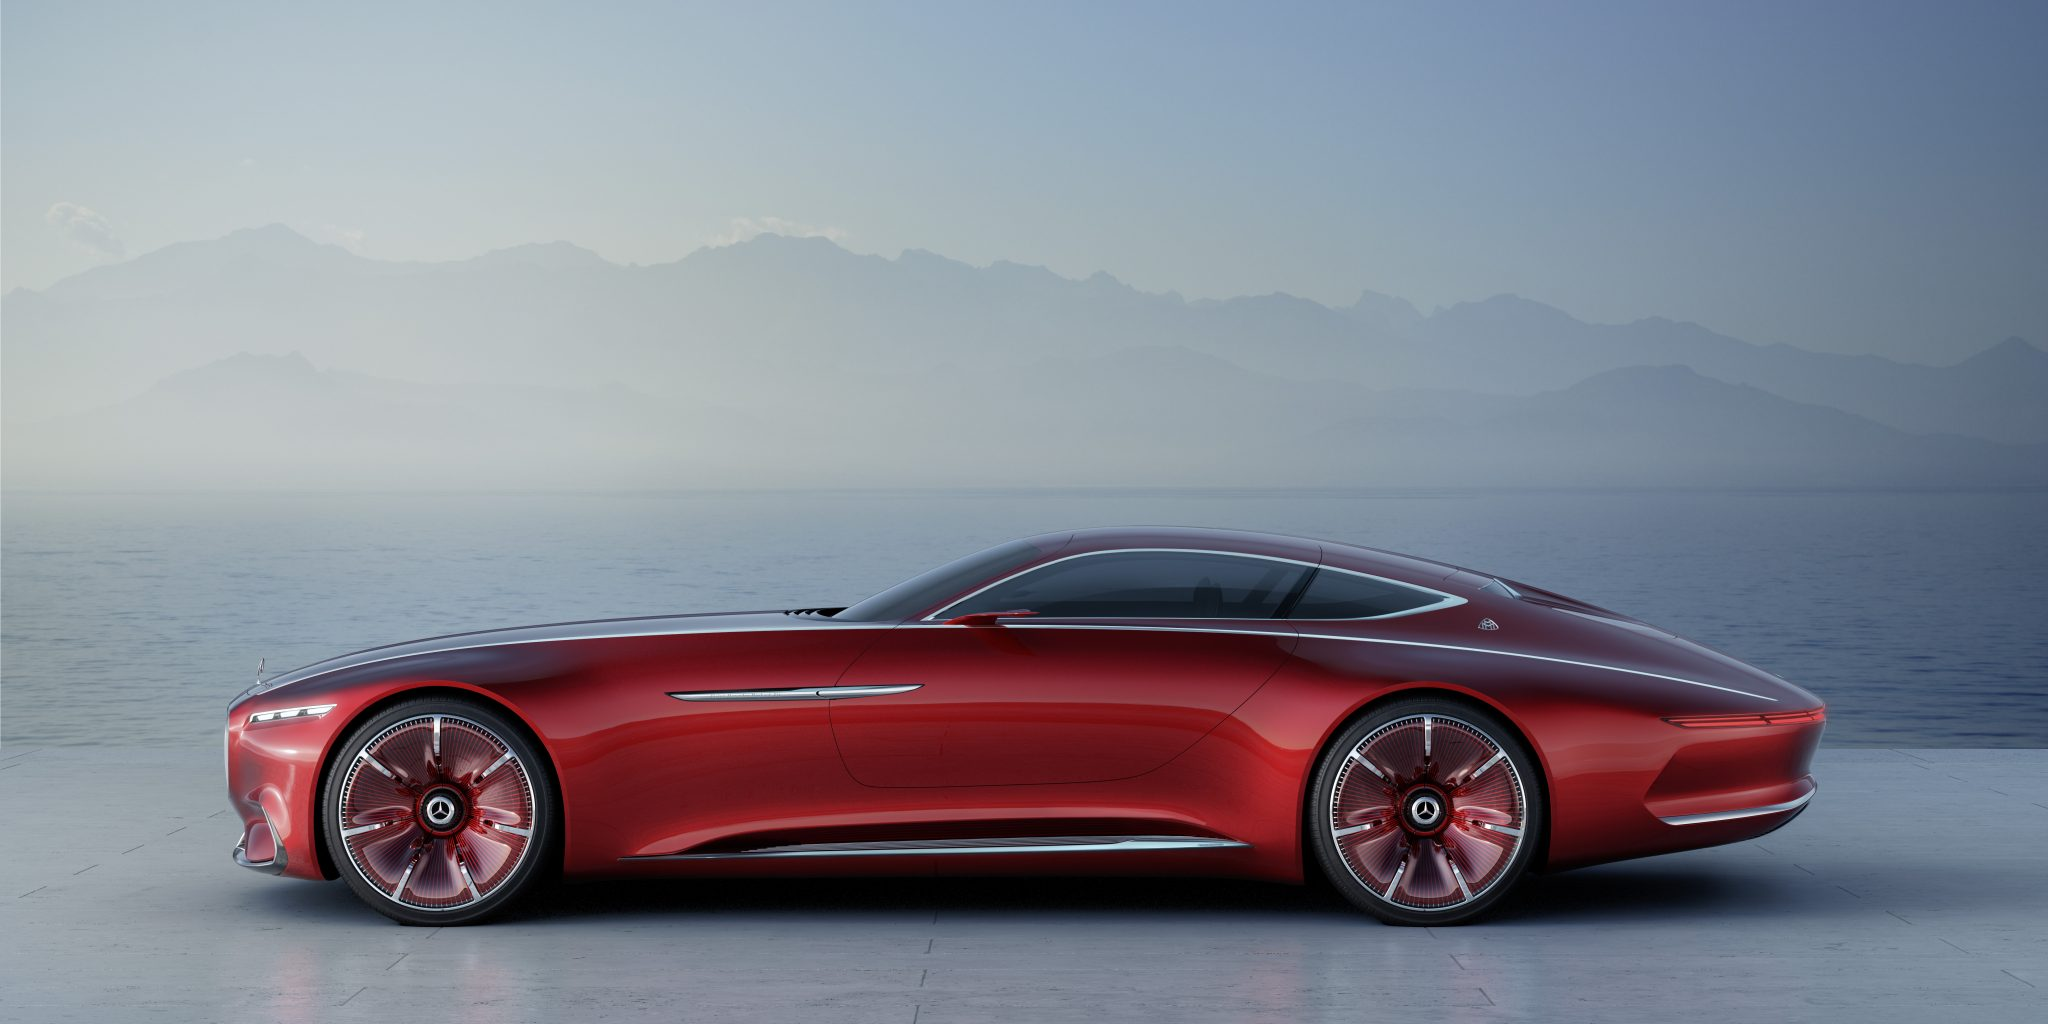 2016 Vision Mercedes Maybach concept